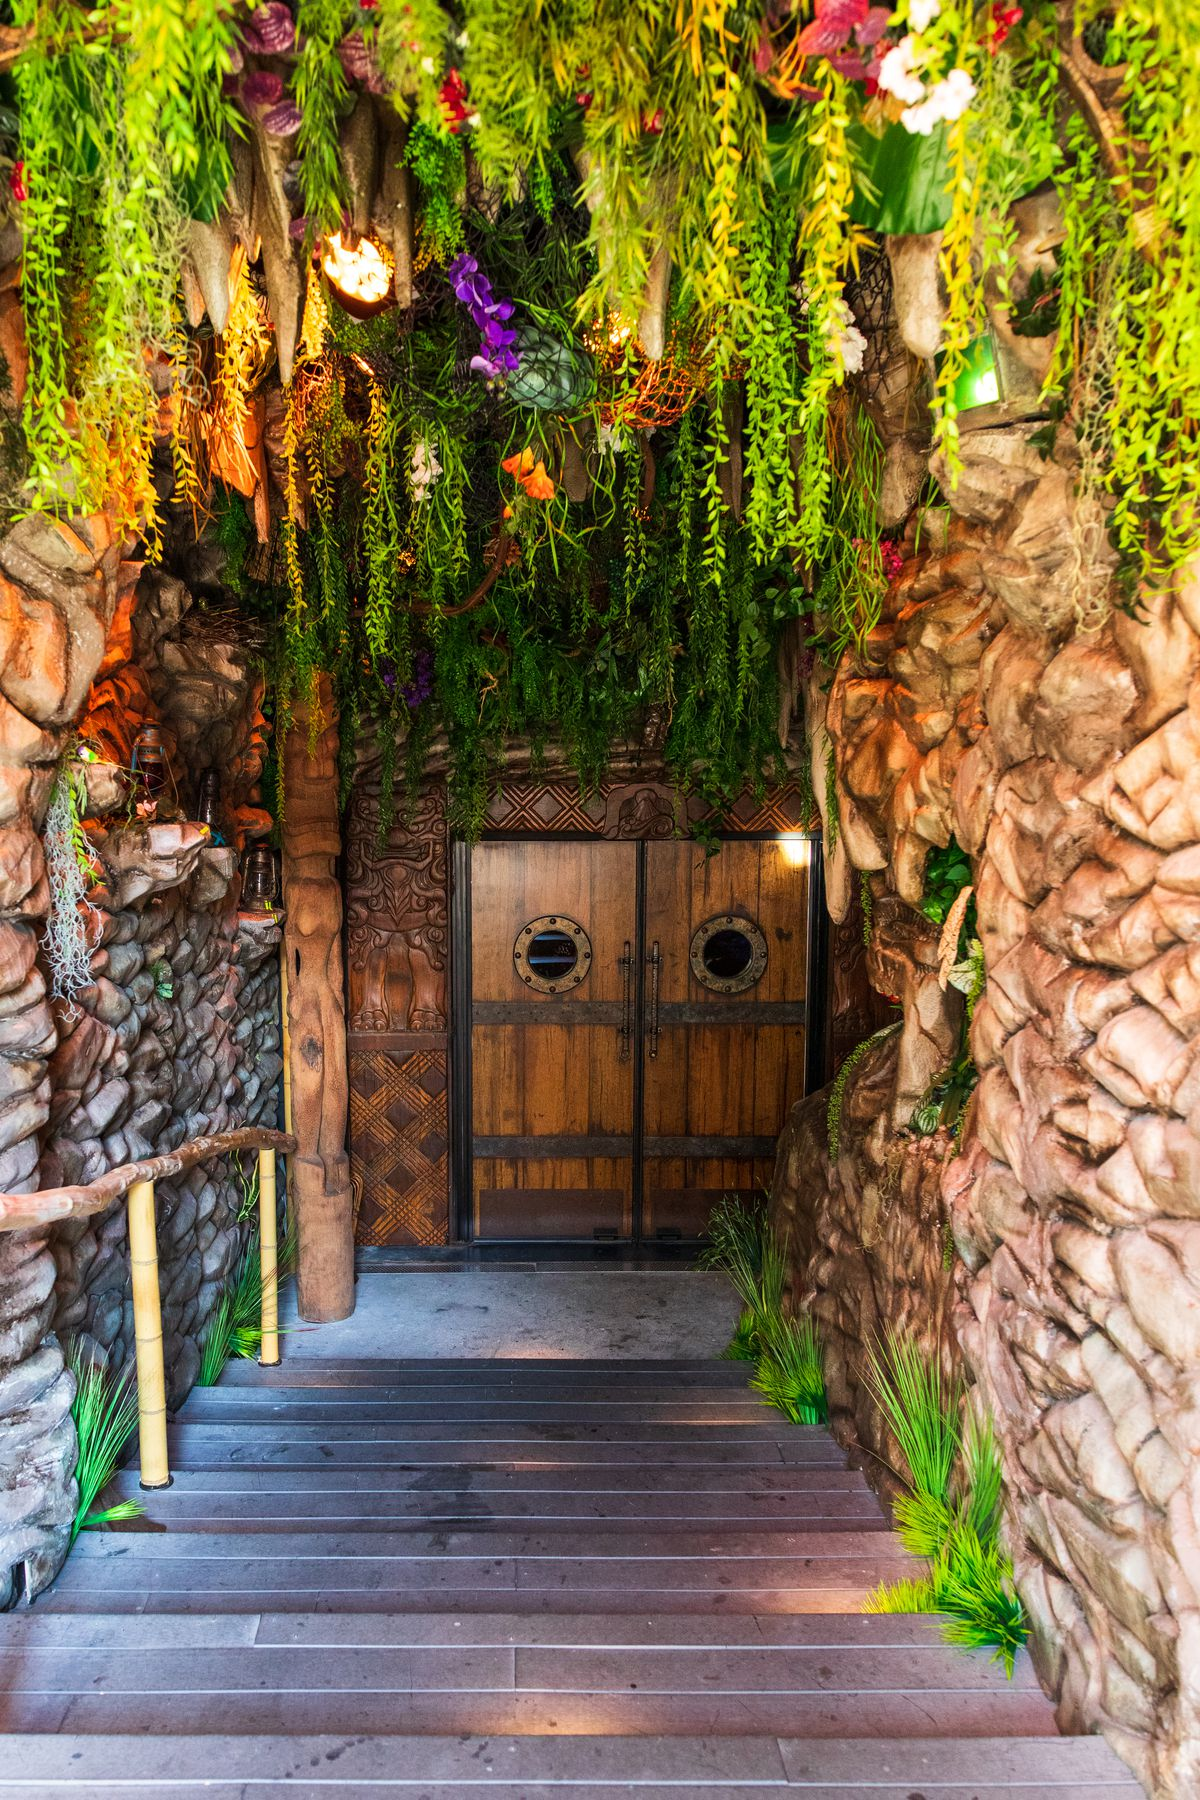 A staircase leads down to double doors with portholes. Overhead, lush green plants and colorful flowers drip from the ceiling